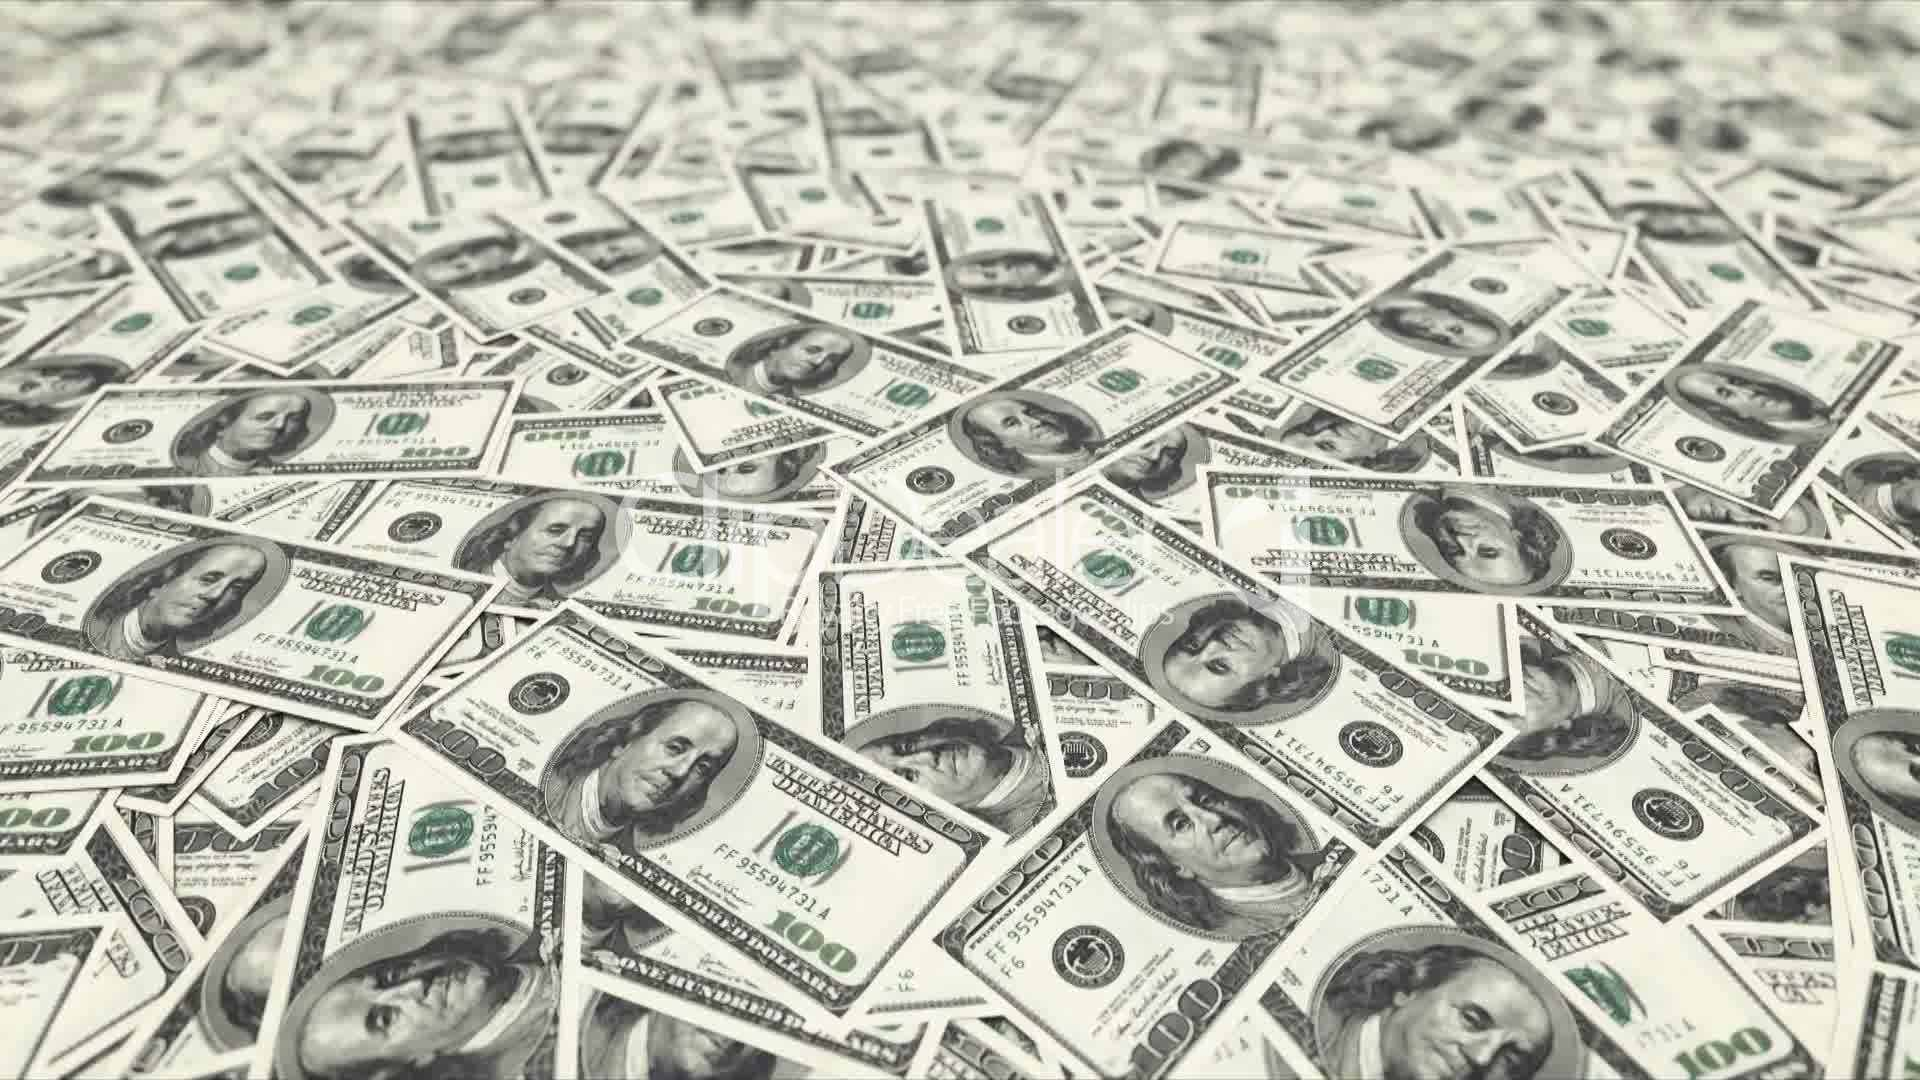 Money wallpaper Money Wallpapers HD Backgrounds Images Pics Photos Free